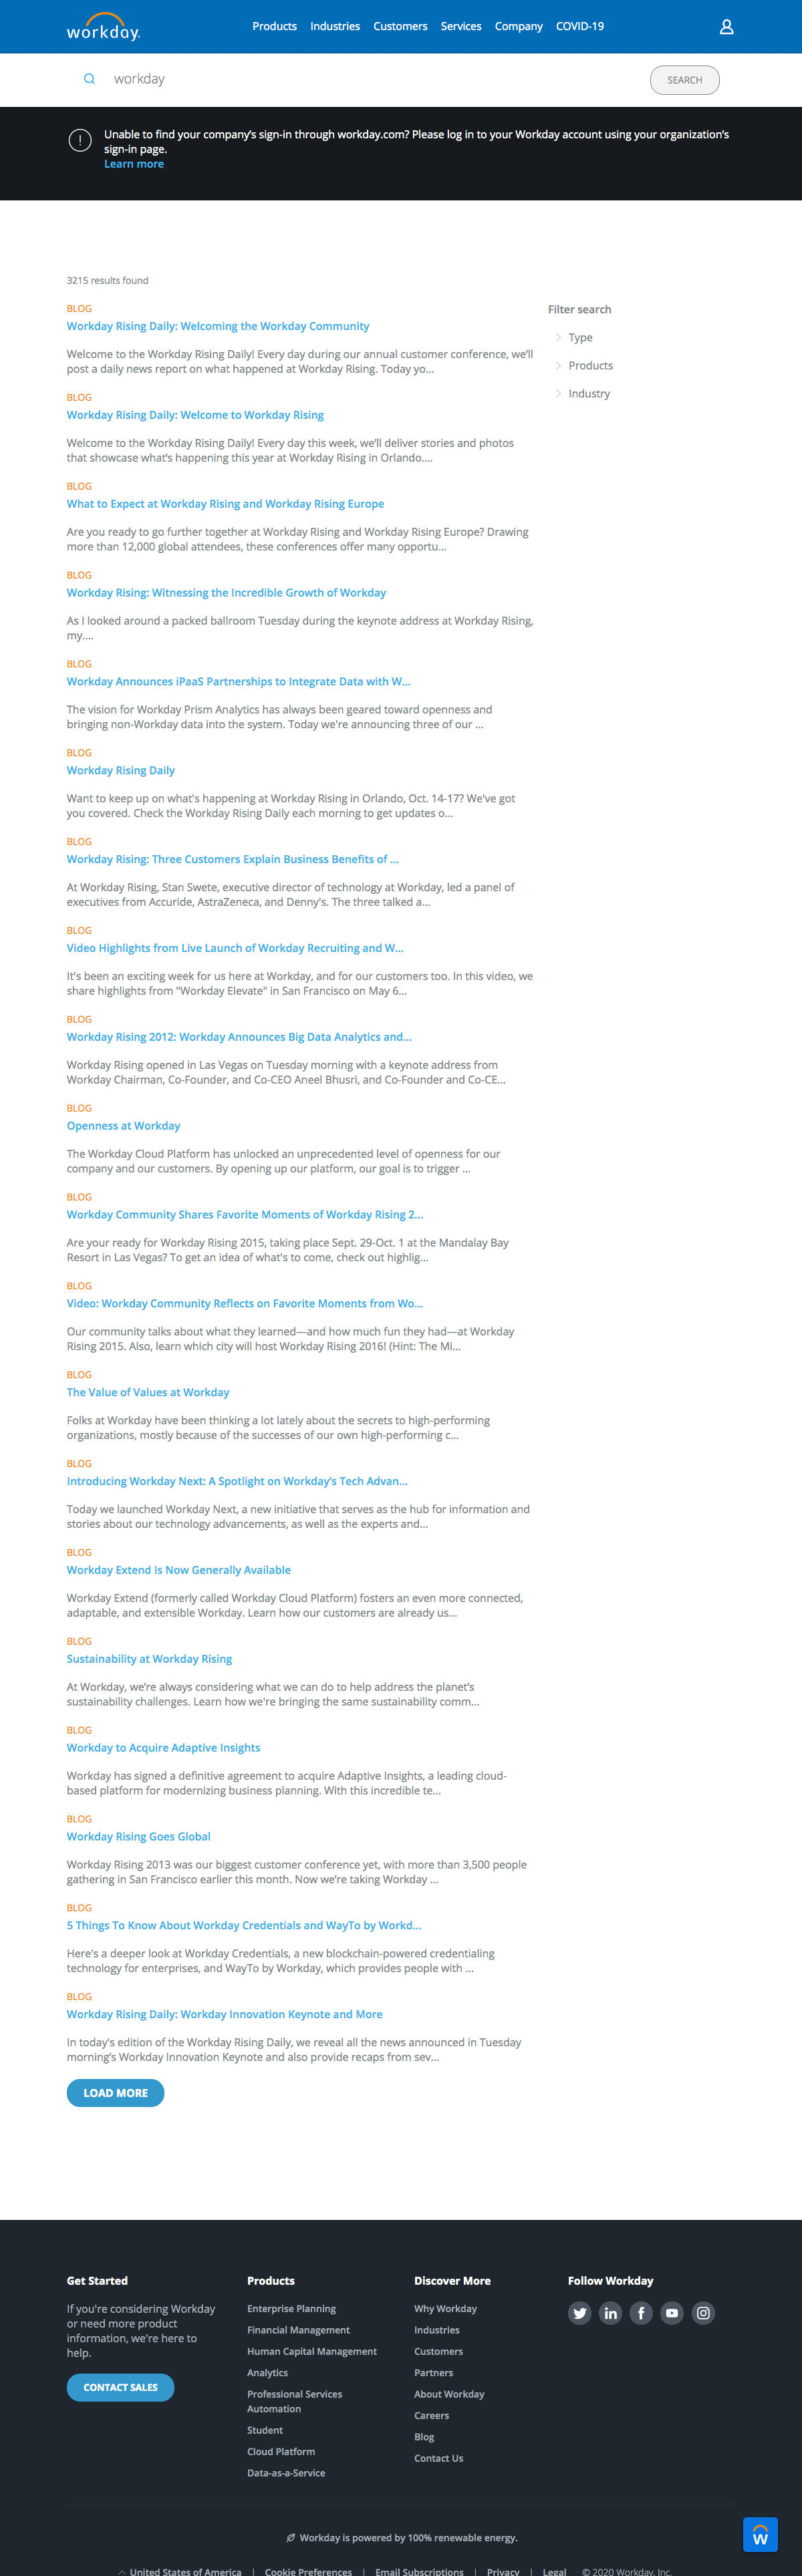 Workday - Search results page